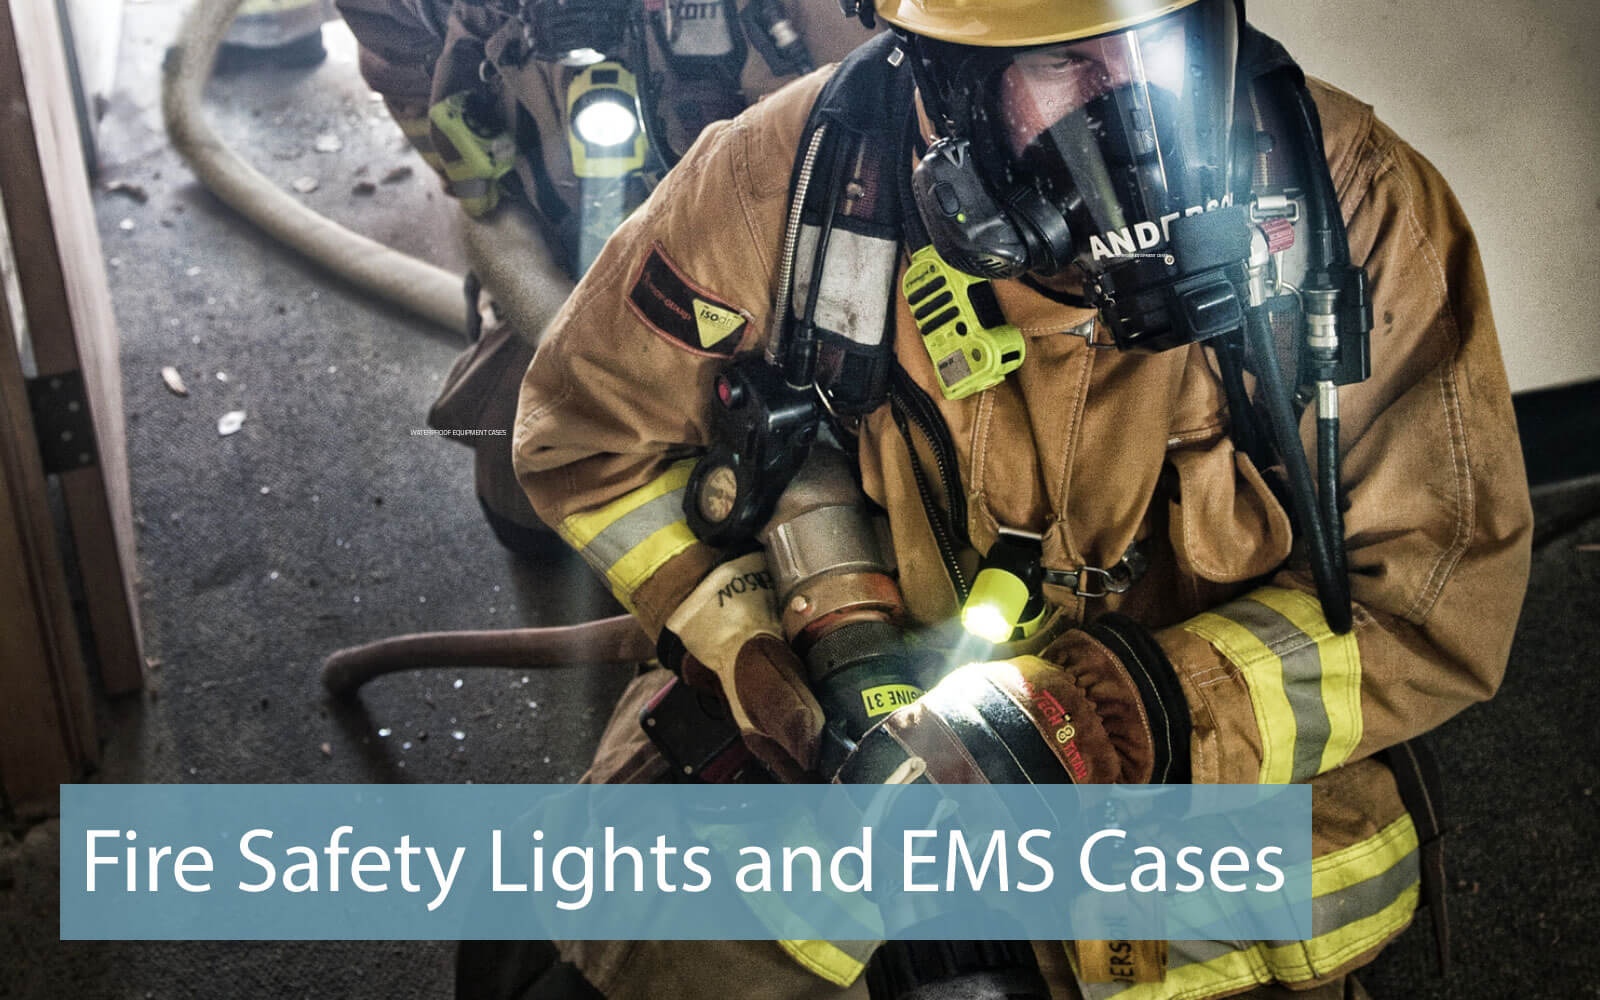 Fire Safety Lights and EMS Cases